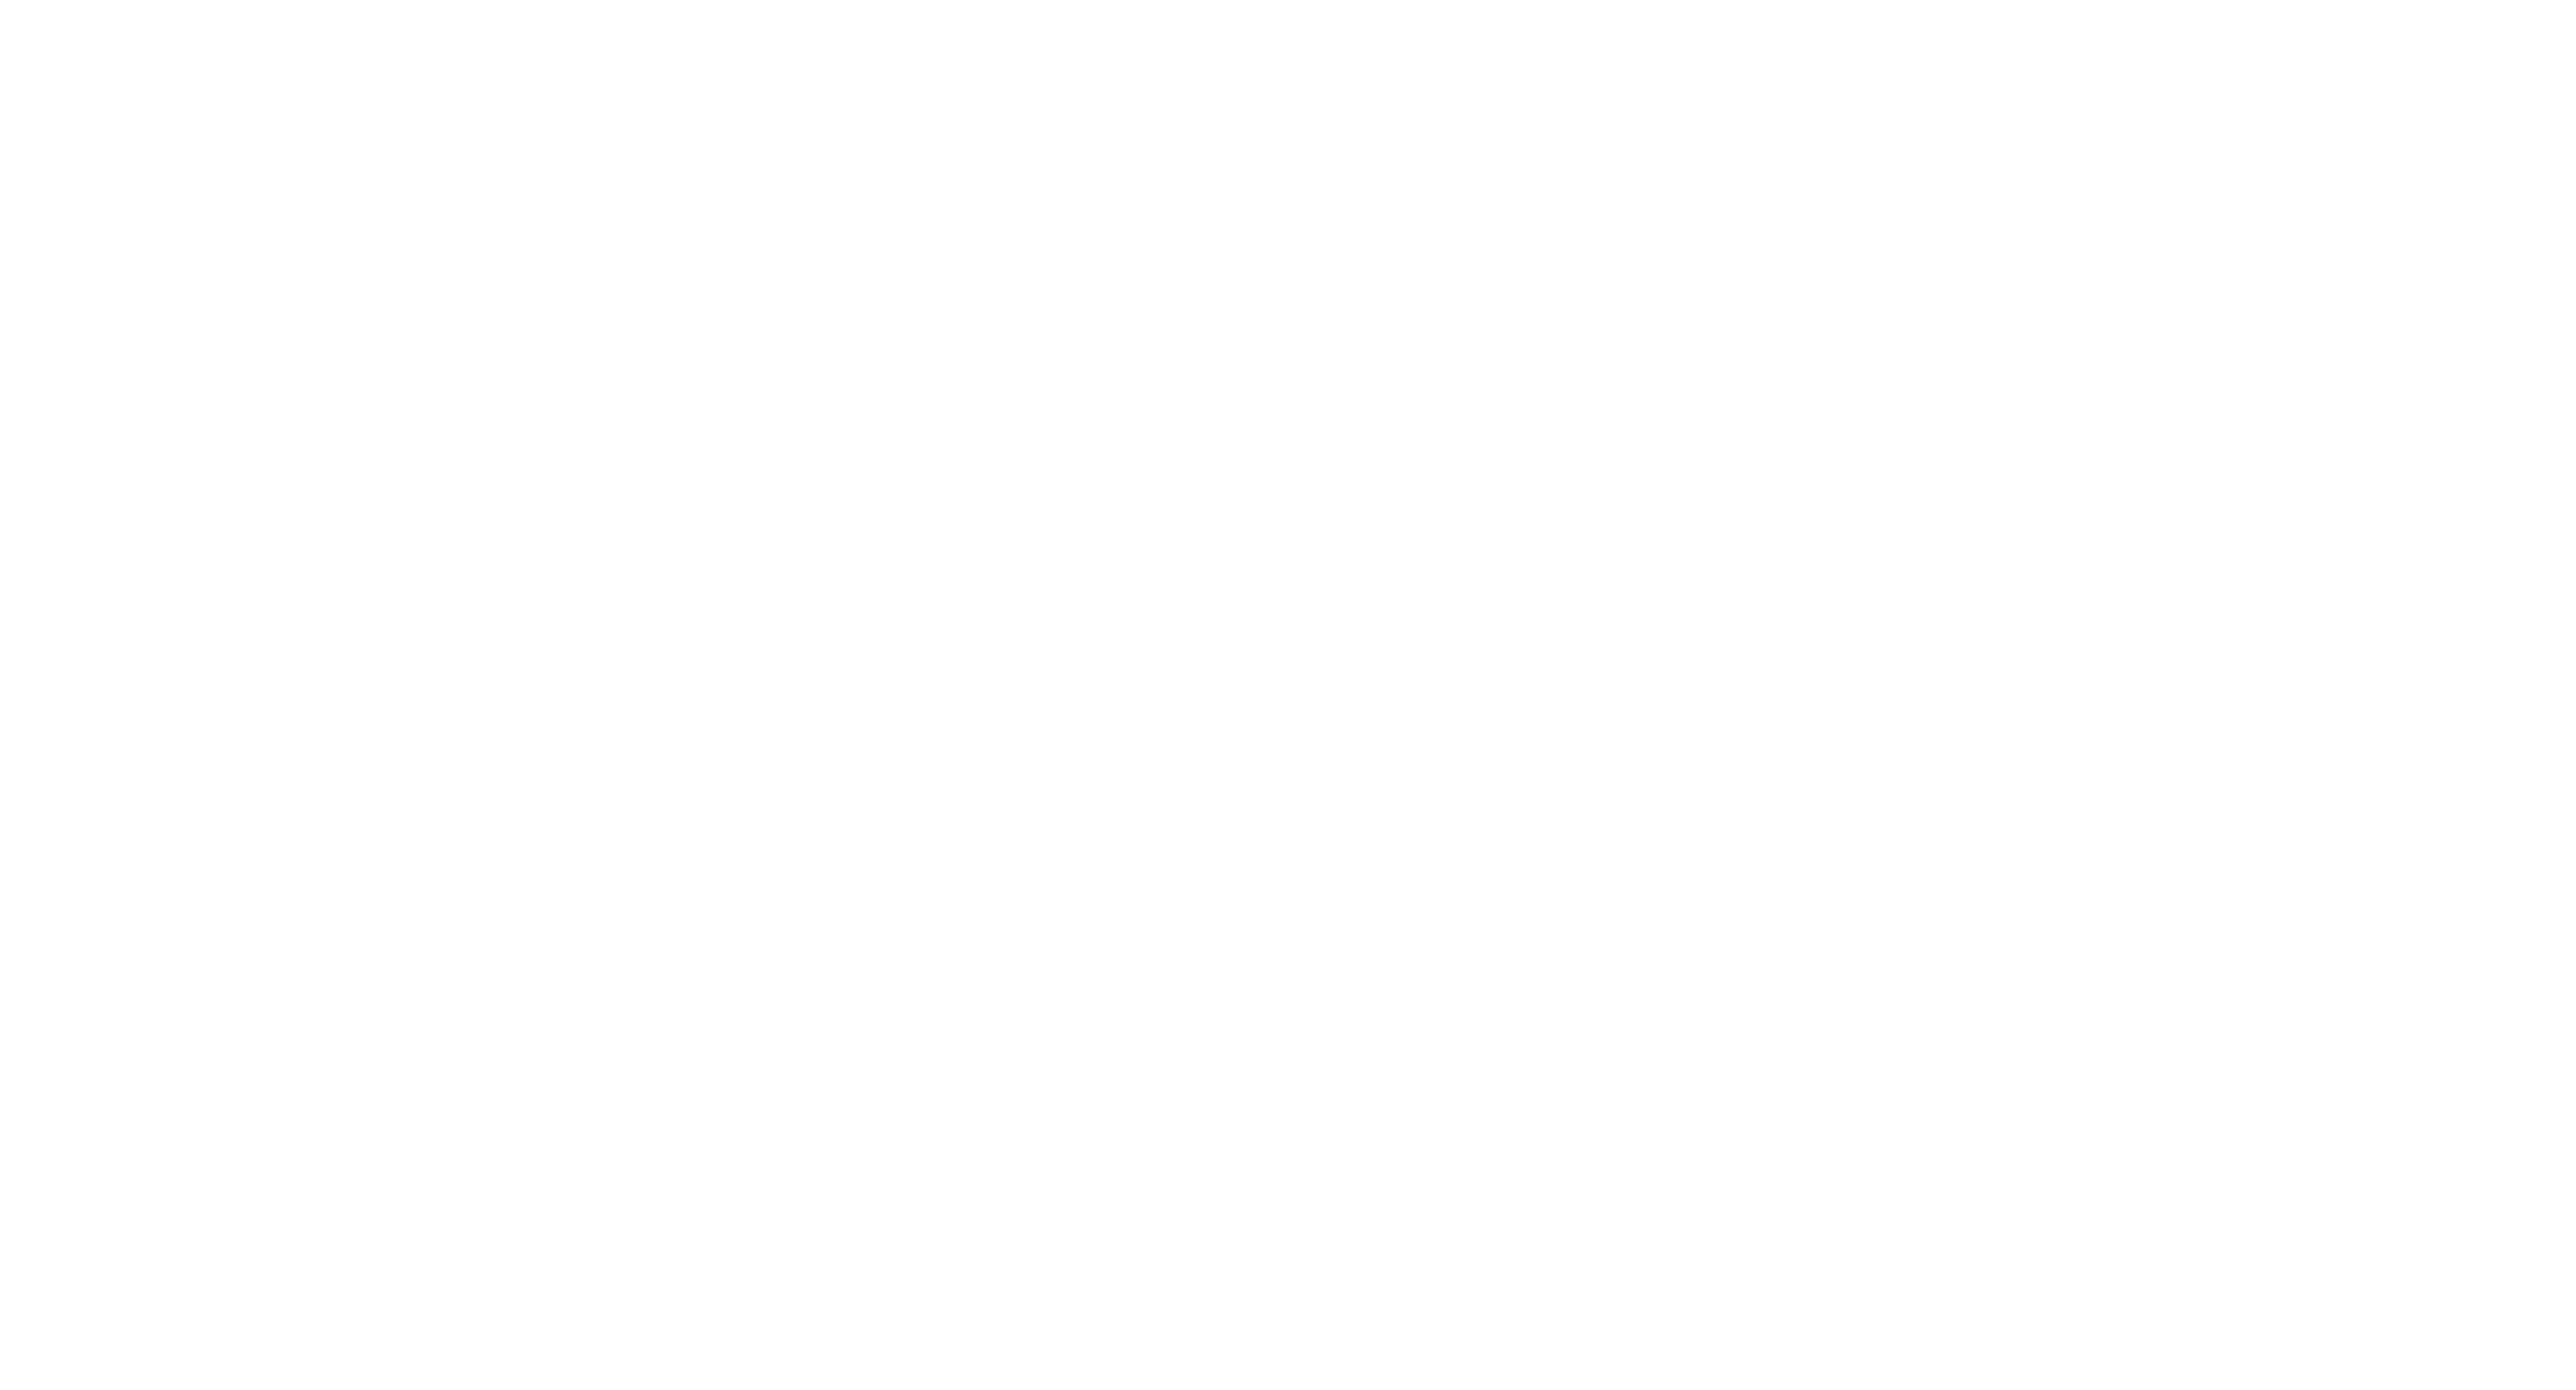 Welsh Liberal Democrats